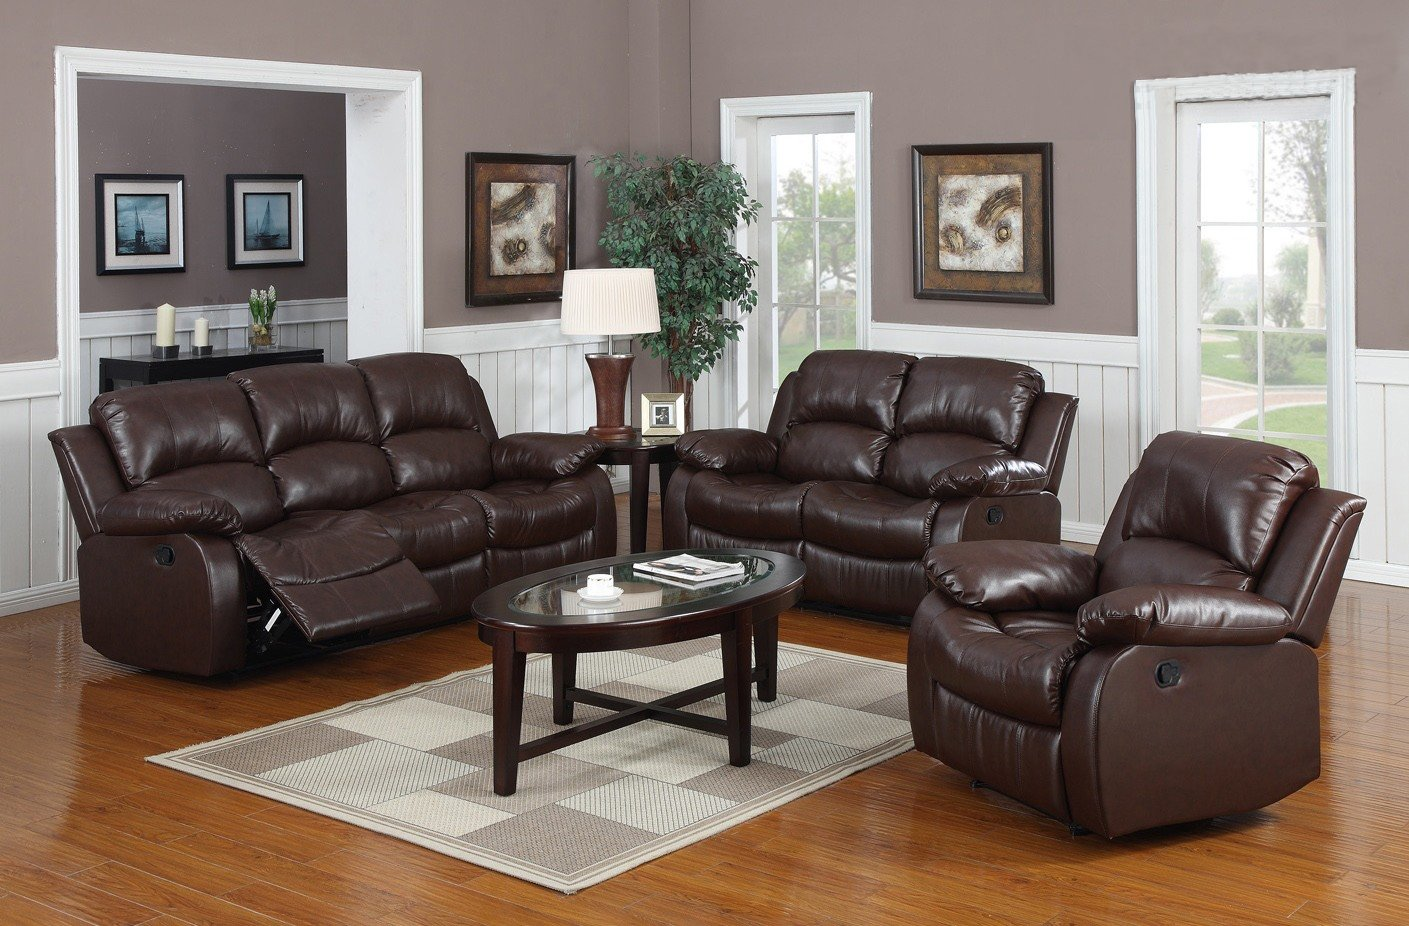 Amazon.com: Huntington 3-pc Bonded Leather Sofa & Loveseat & Chair ...